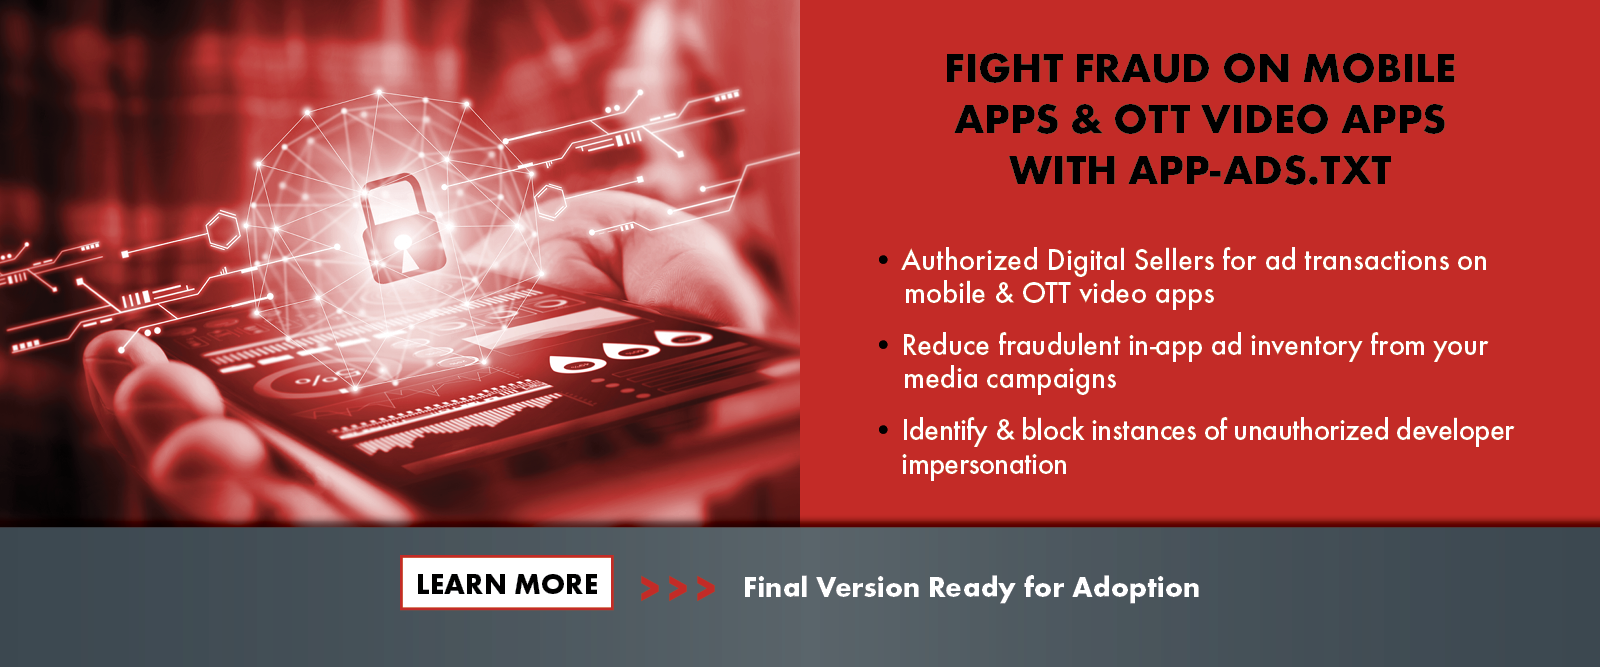 Fighting ad fraud with App-ads.txt